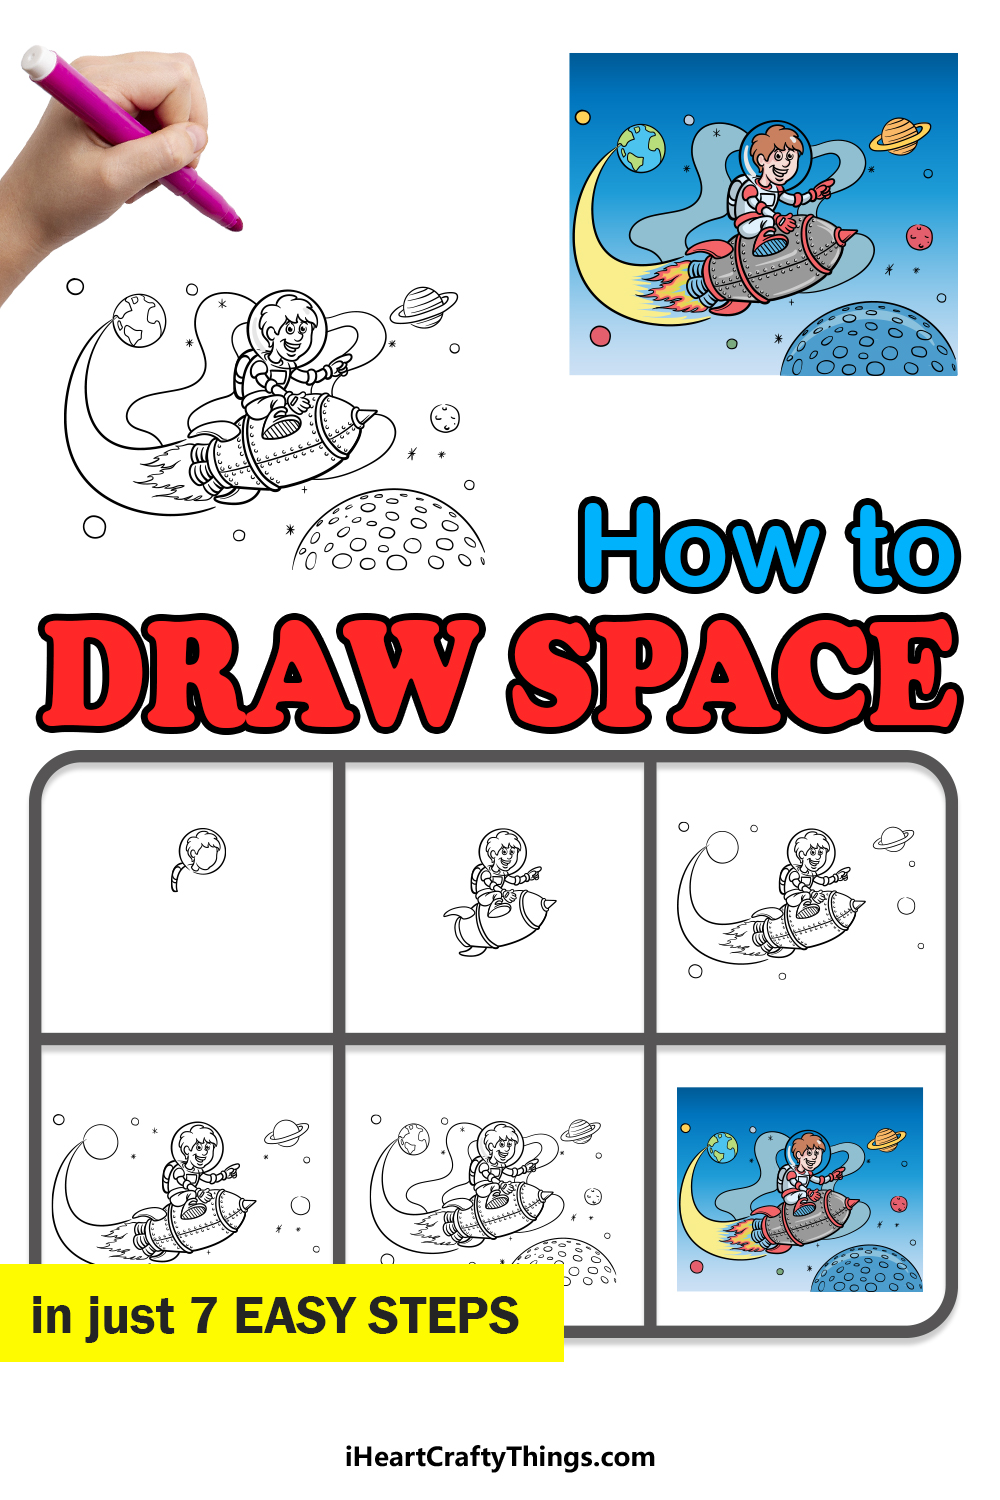 how to draw space in 7 easy steps